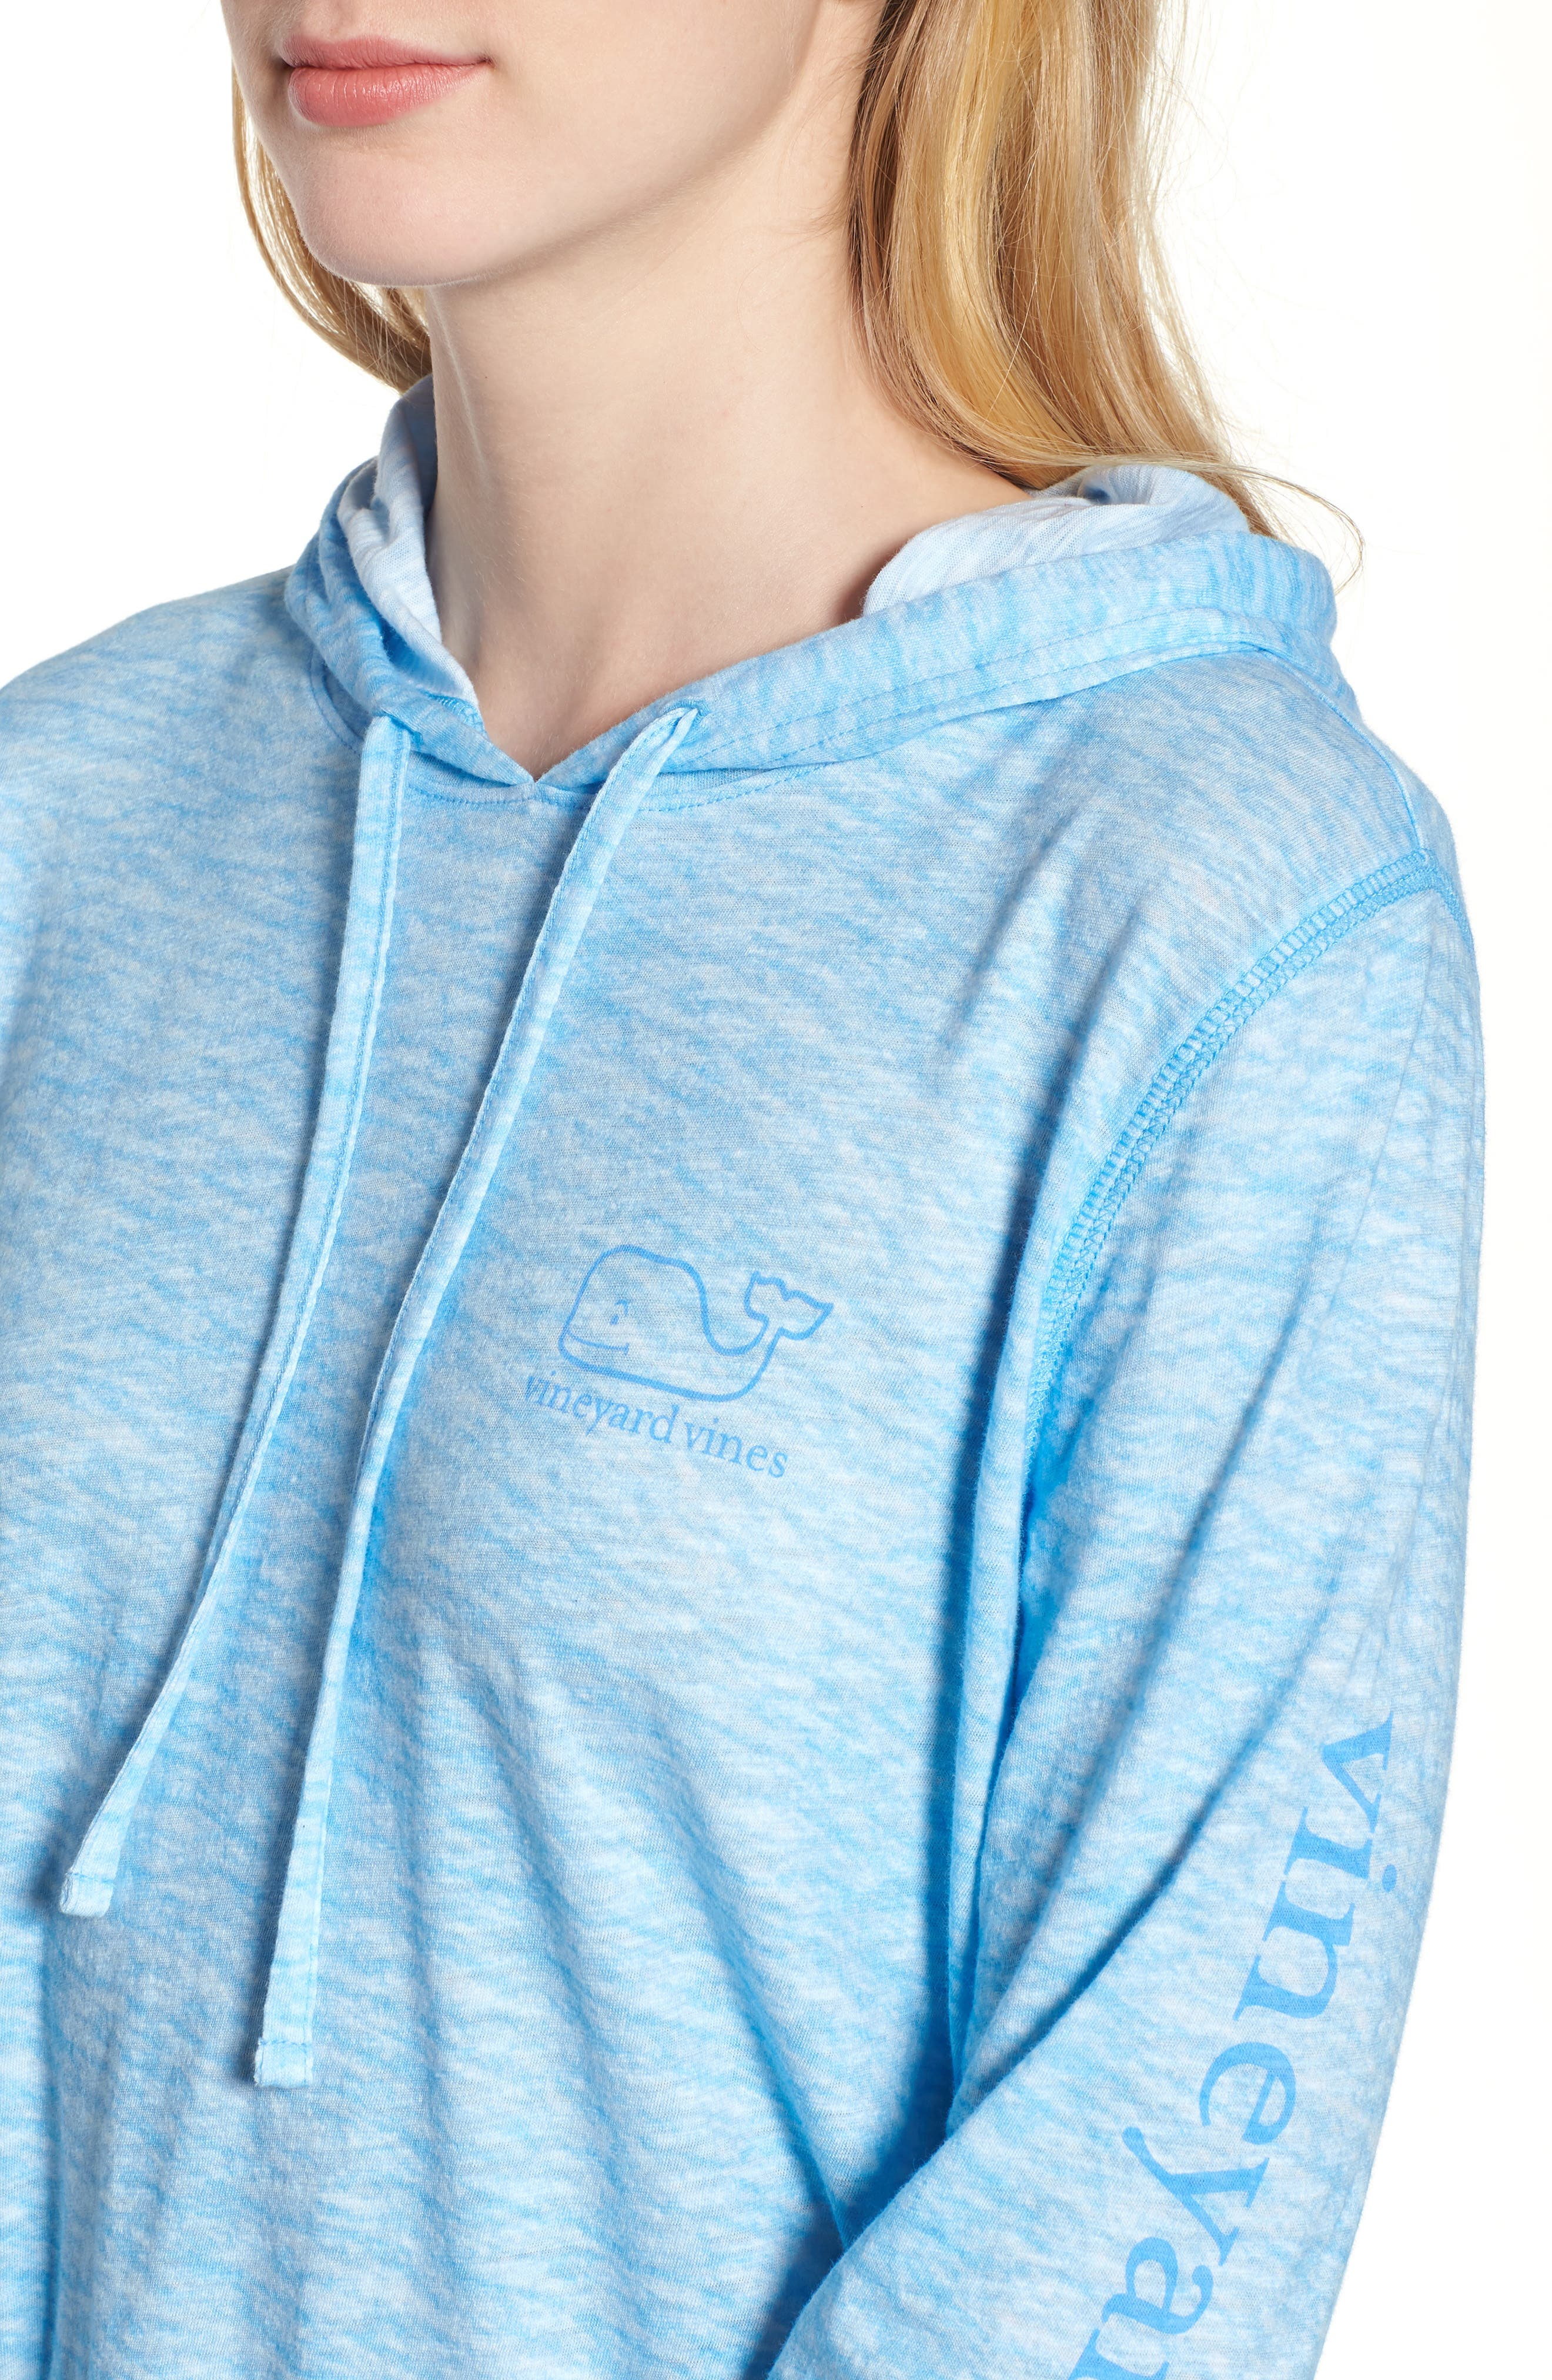 VINEYARD VINES,                             Whale Hoodie,                             Alternate thumbnail 4, color,                             474